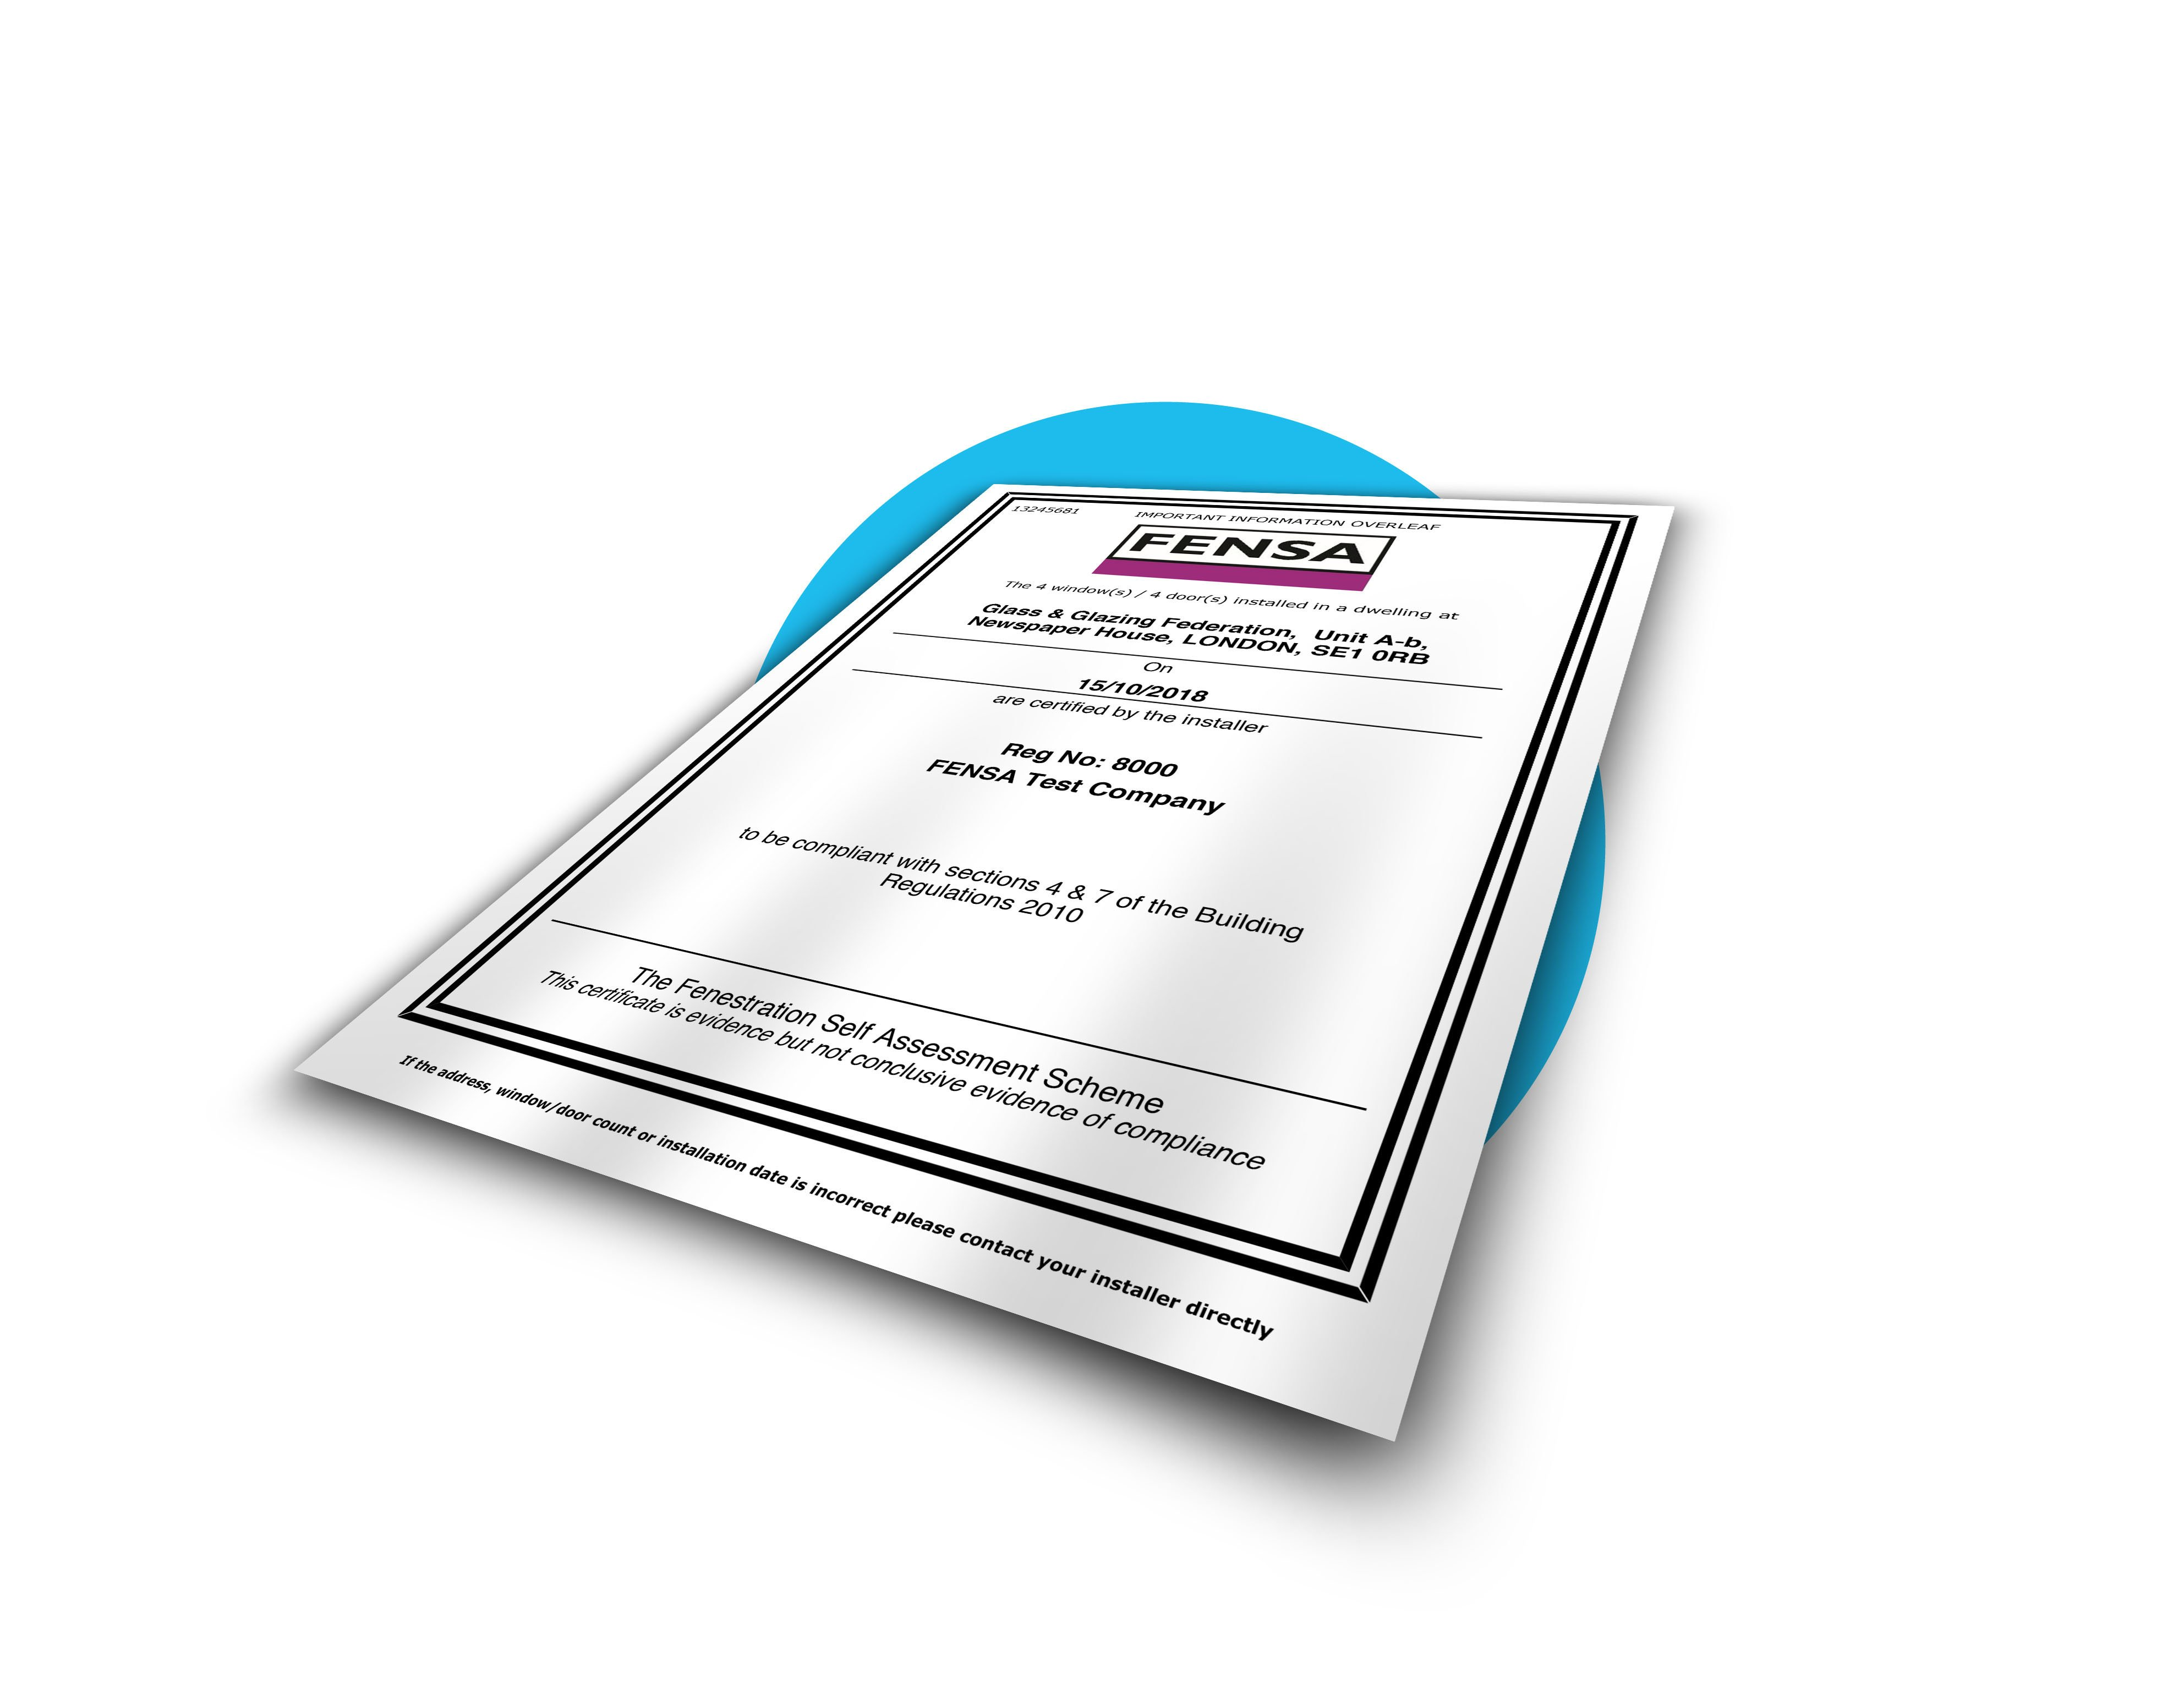 Find and order your FENSA certificate